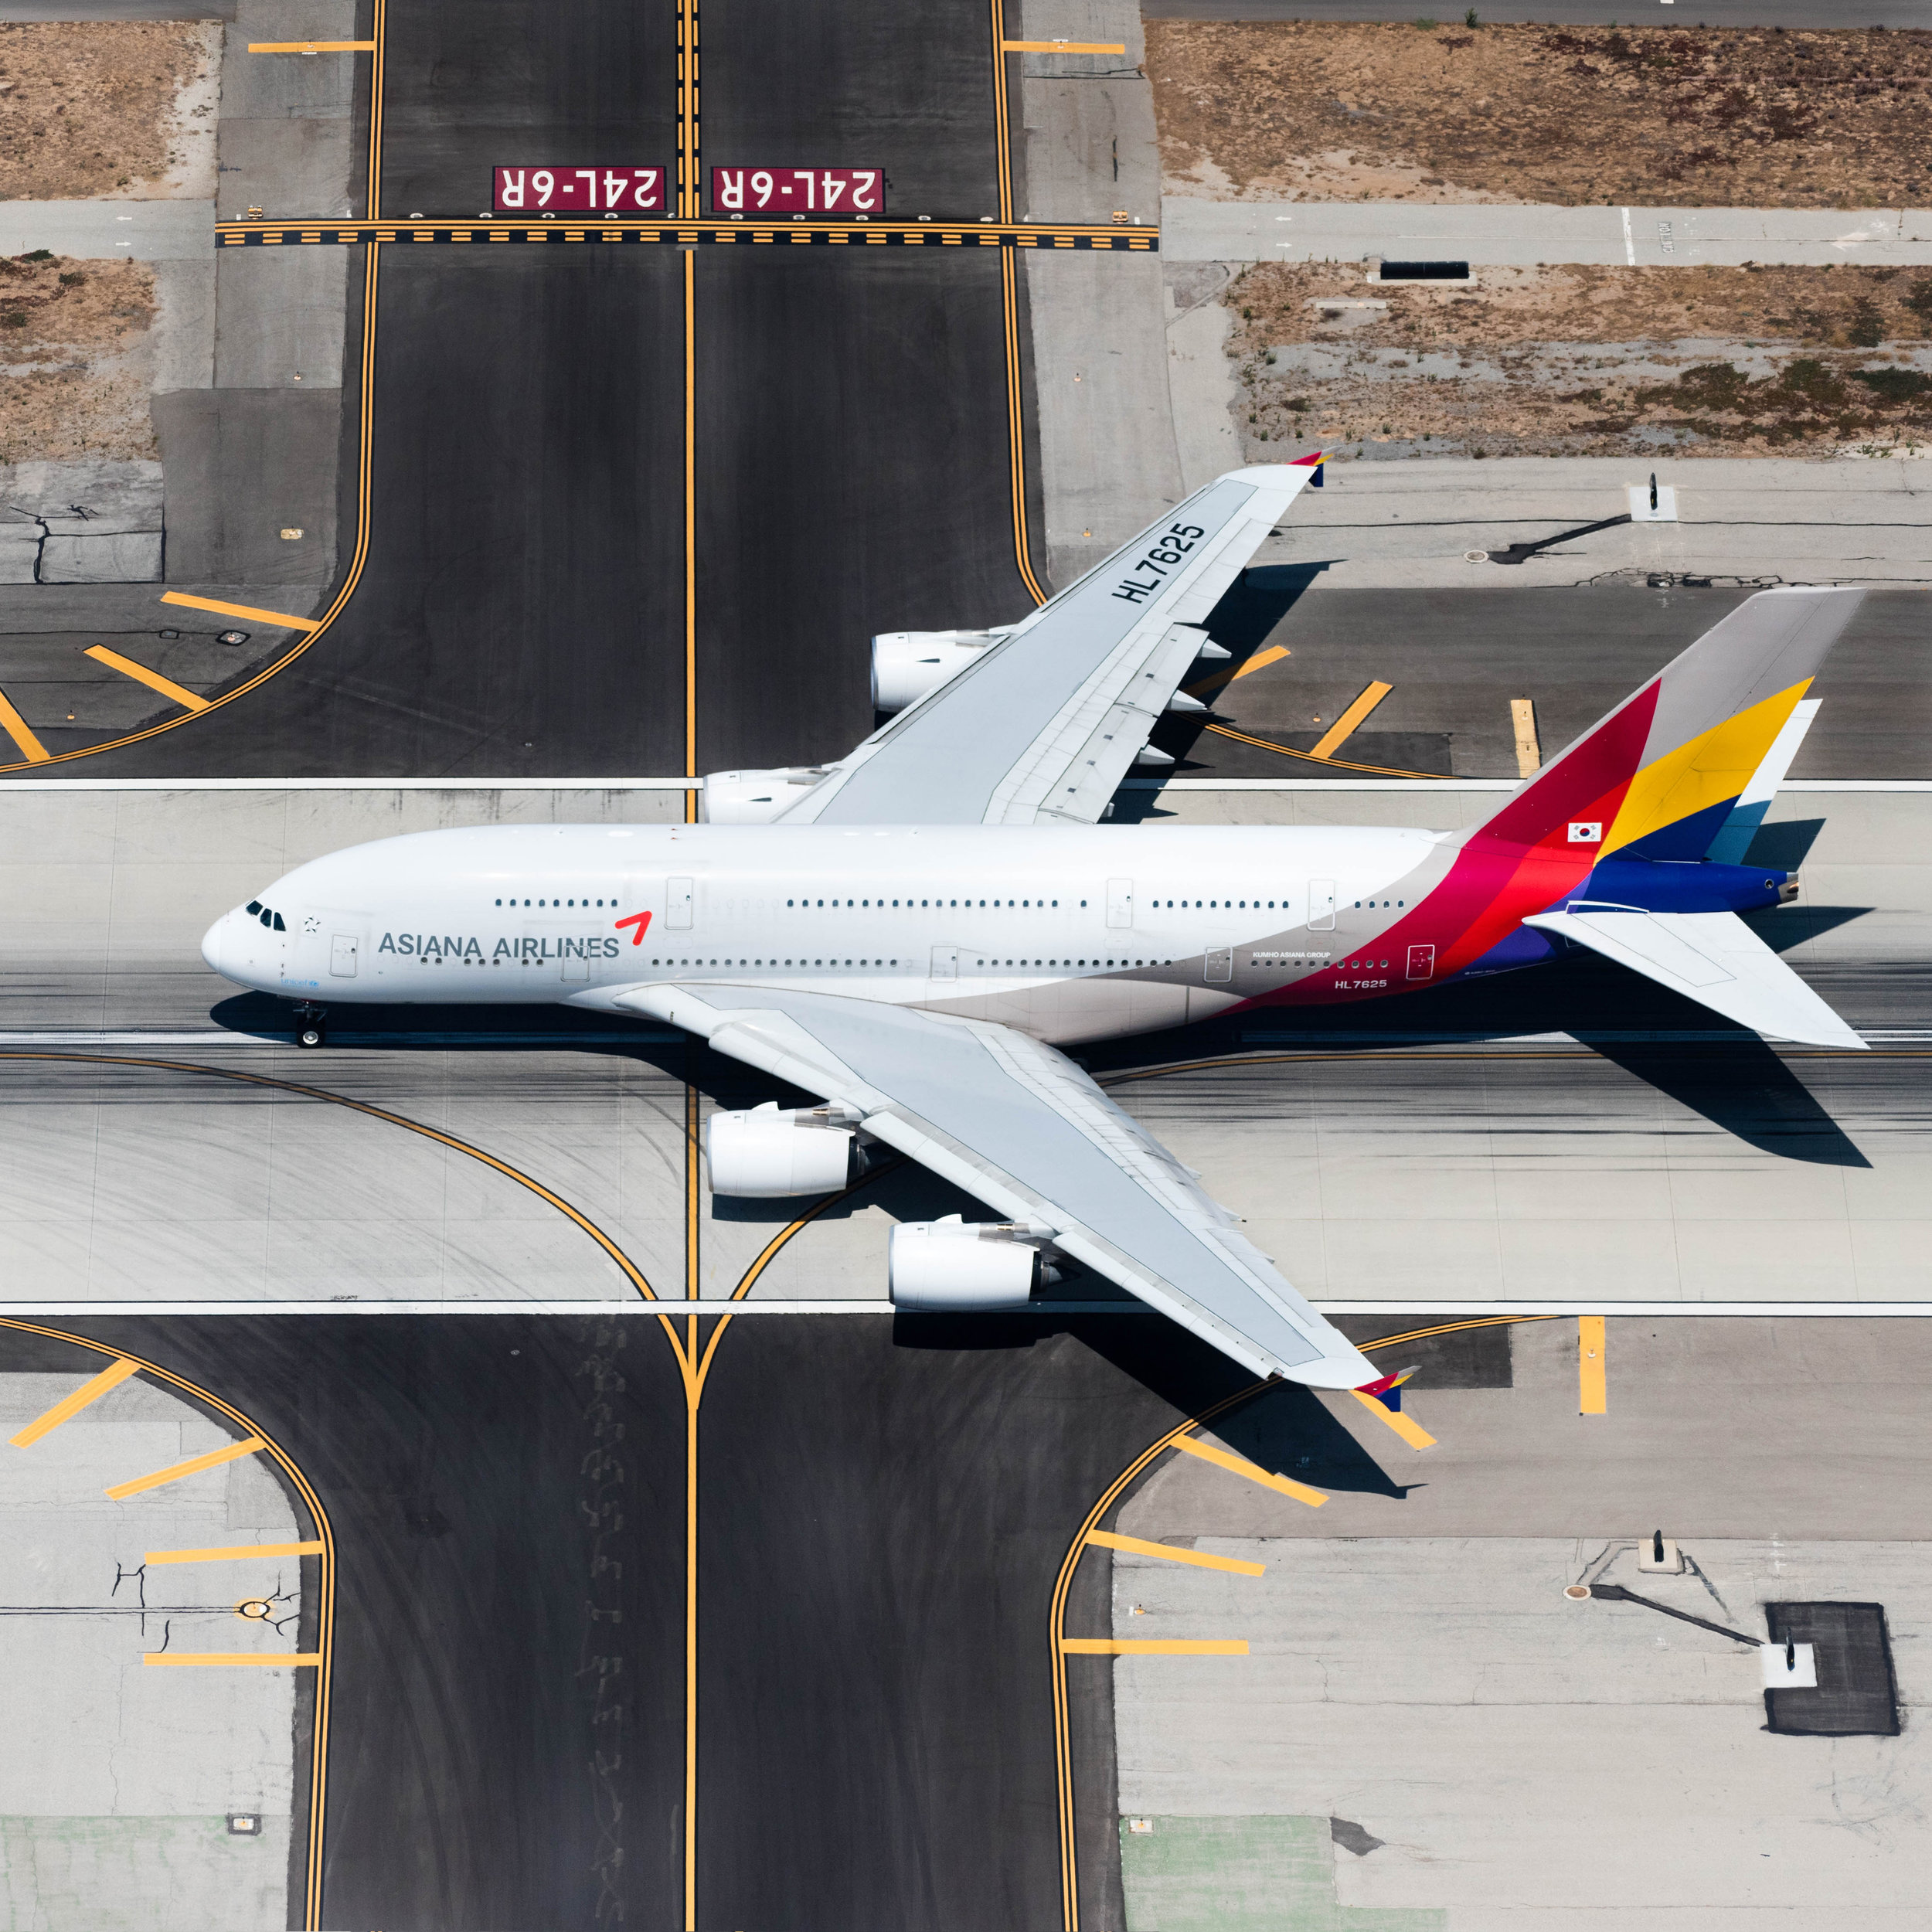 asian a380 intersection full (1 of 1).jpg